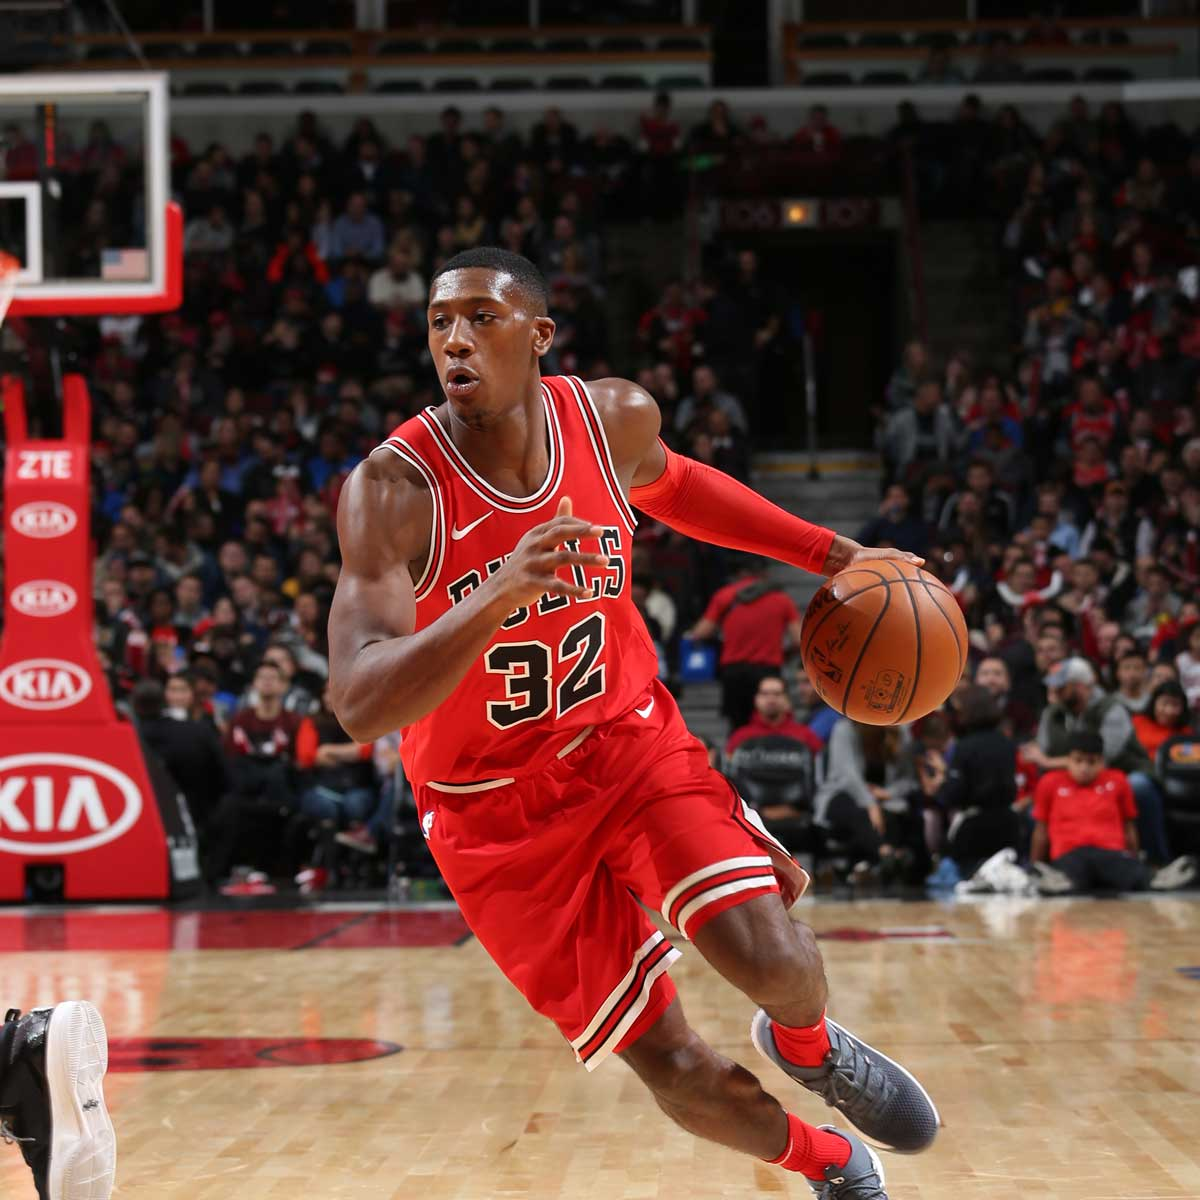 Kris Dunn #32 of the Chicago Bulls handles the ball against the Indiana Pacers on November 10, 2017 at the United Center in Chicago, Illinois.